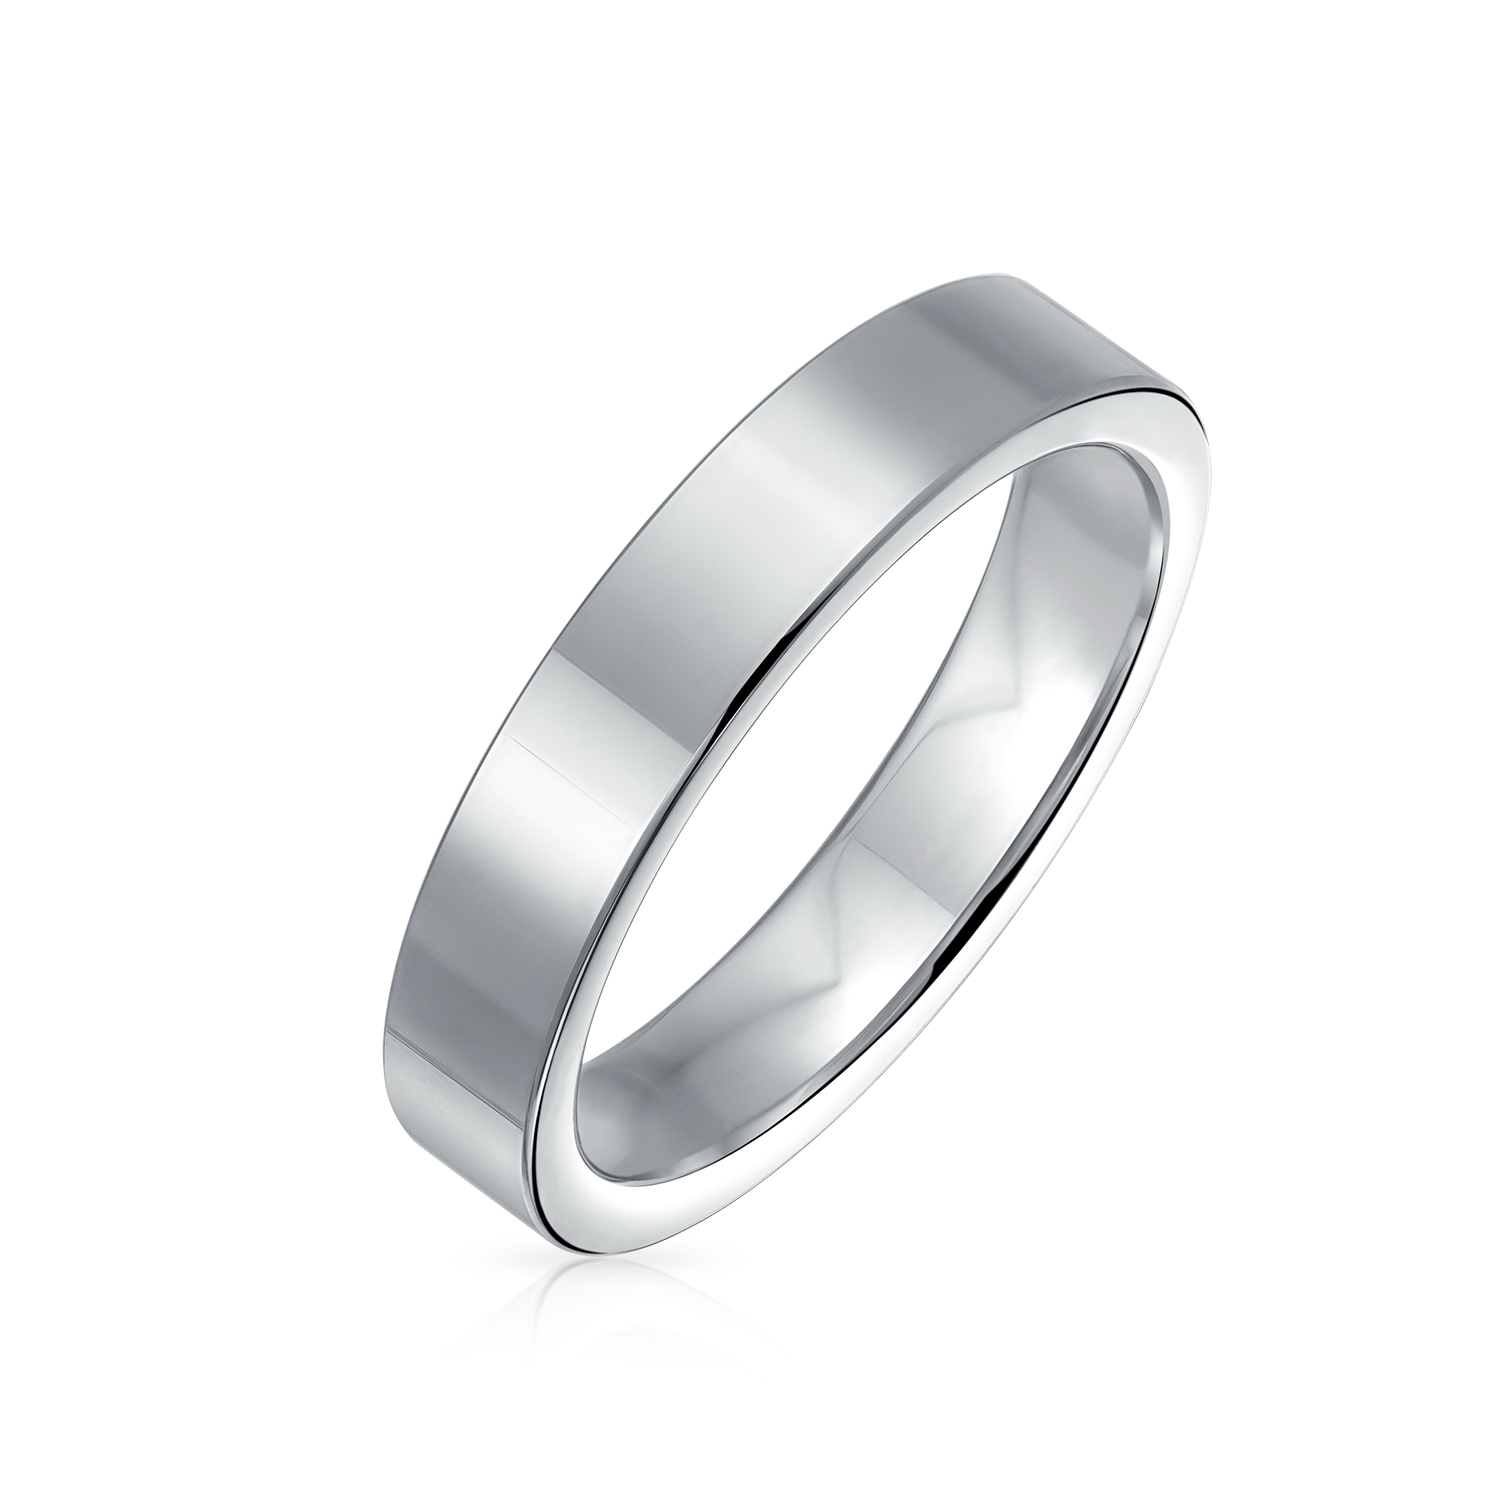 It is just a picture of Plain Simple Flat Cigar Couples Titanium Wedding Band Rings For Men For Women Silver Tone 46MM